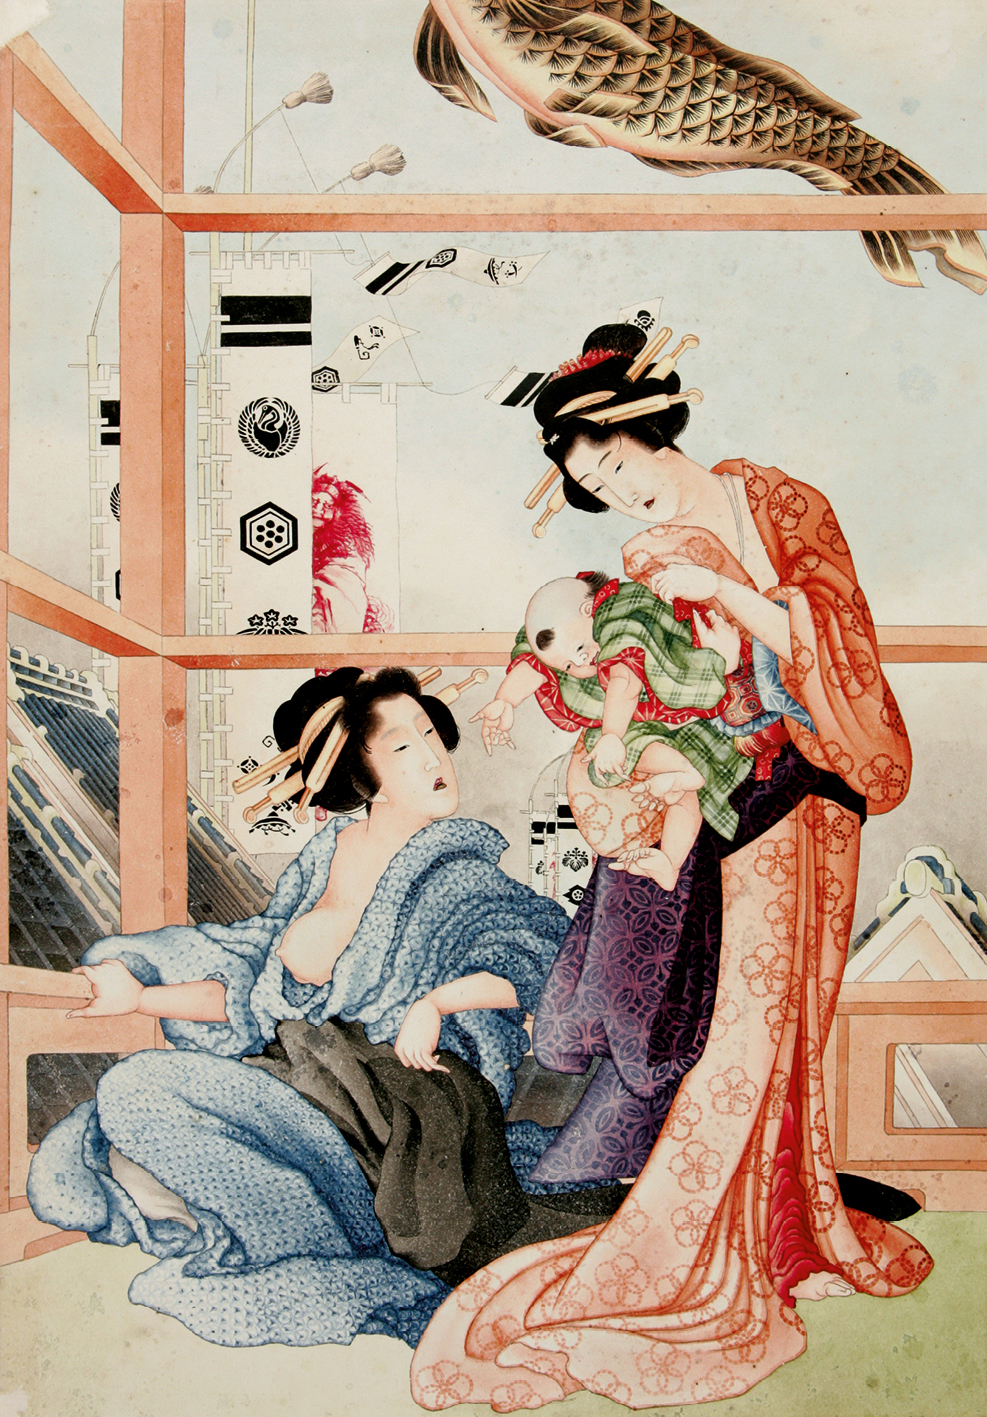 Attributed to Hokusai. Boys' Festival. Ink and colour on old Dutch paper, 1824-1826. Nationaal Museum van Wereldculturen, Leiden.